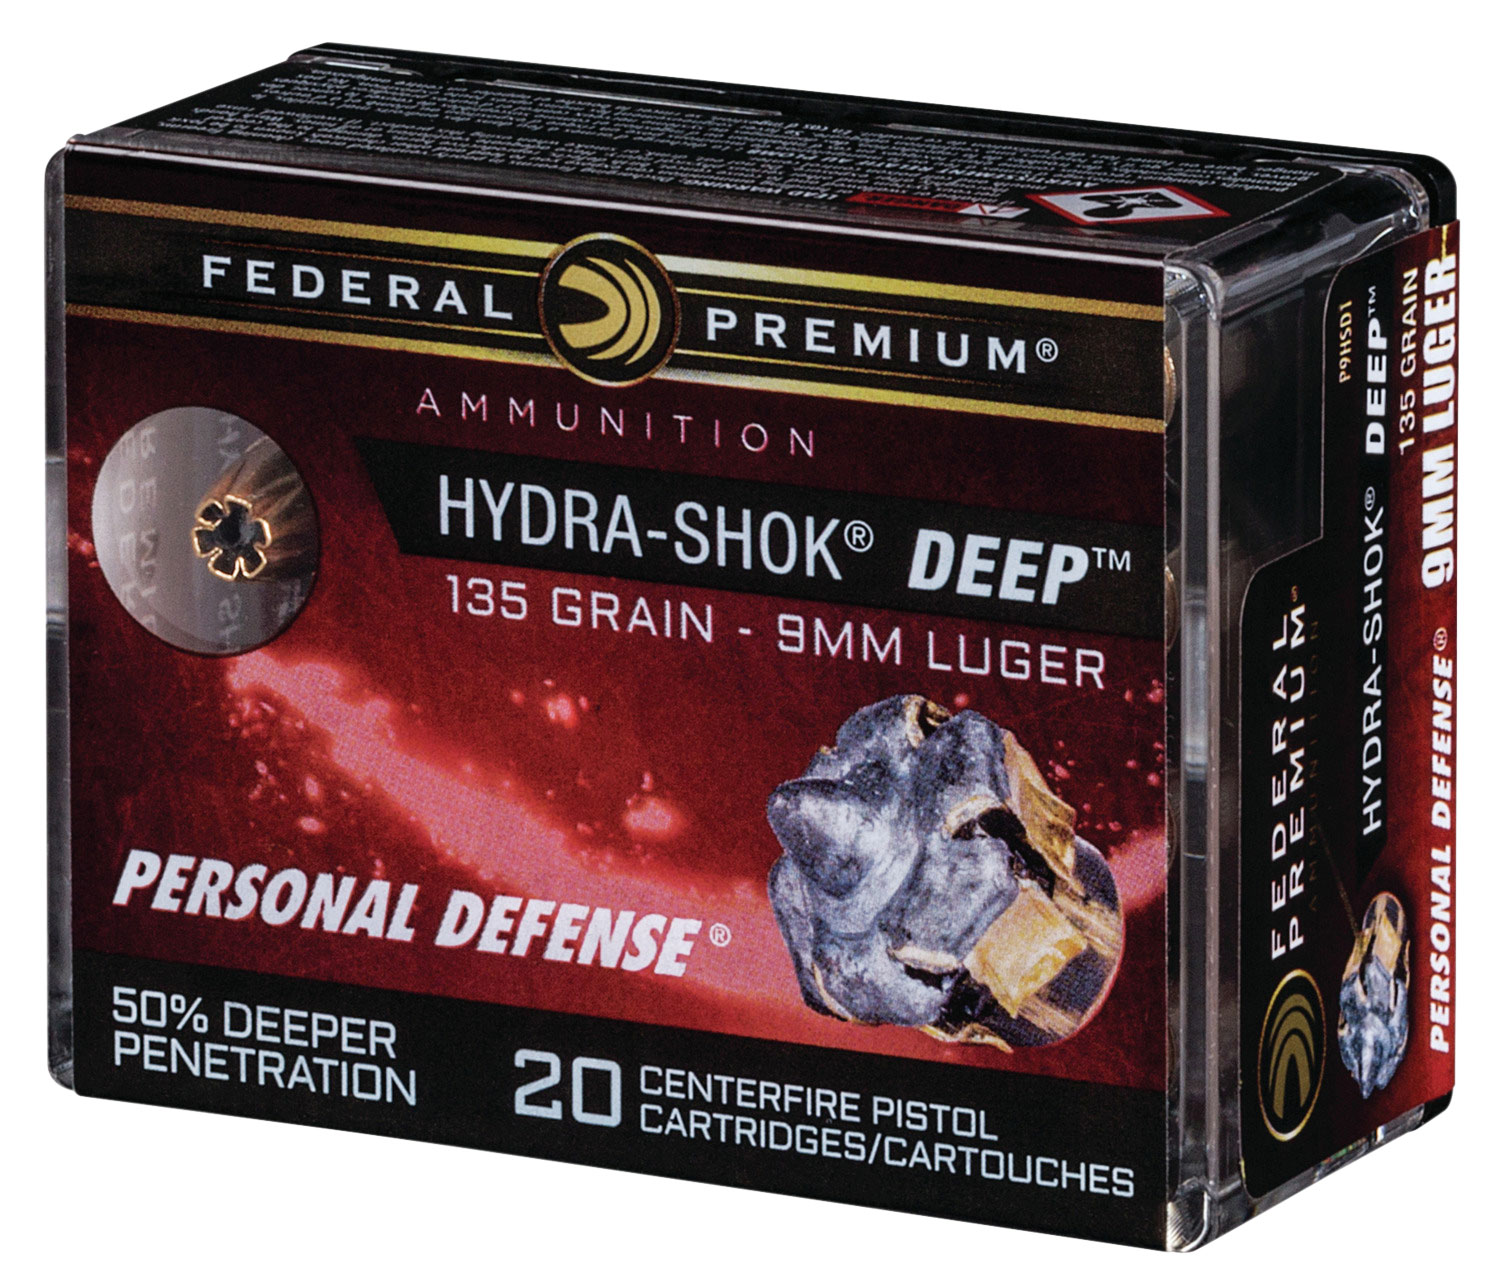 Federal P9HSD1 Premium Personal Defense 9mm Luger 135 GR Hydra-Shok Deep Hollow Point (HSHK HP) 20 Bx/ 10 Cs